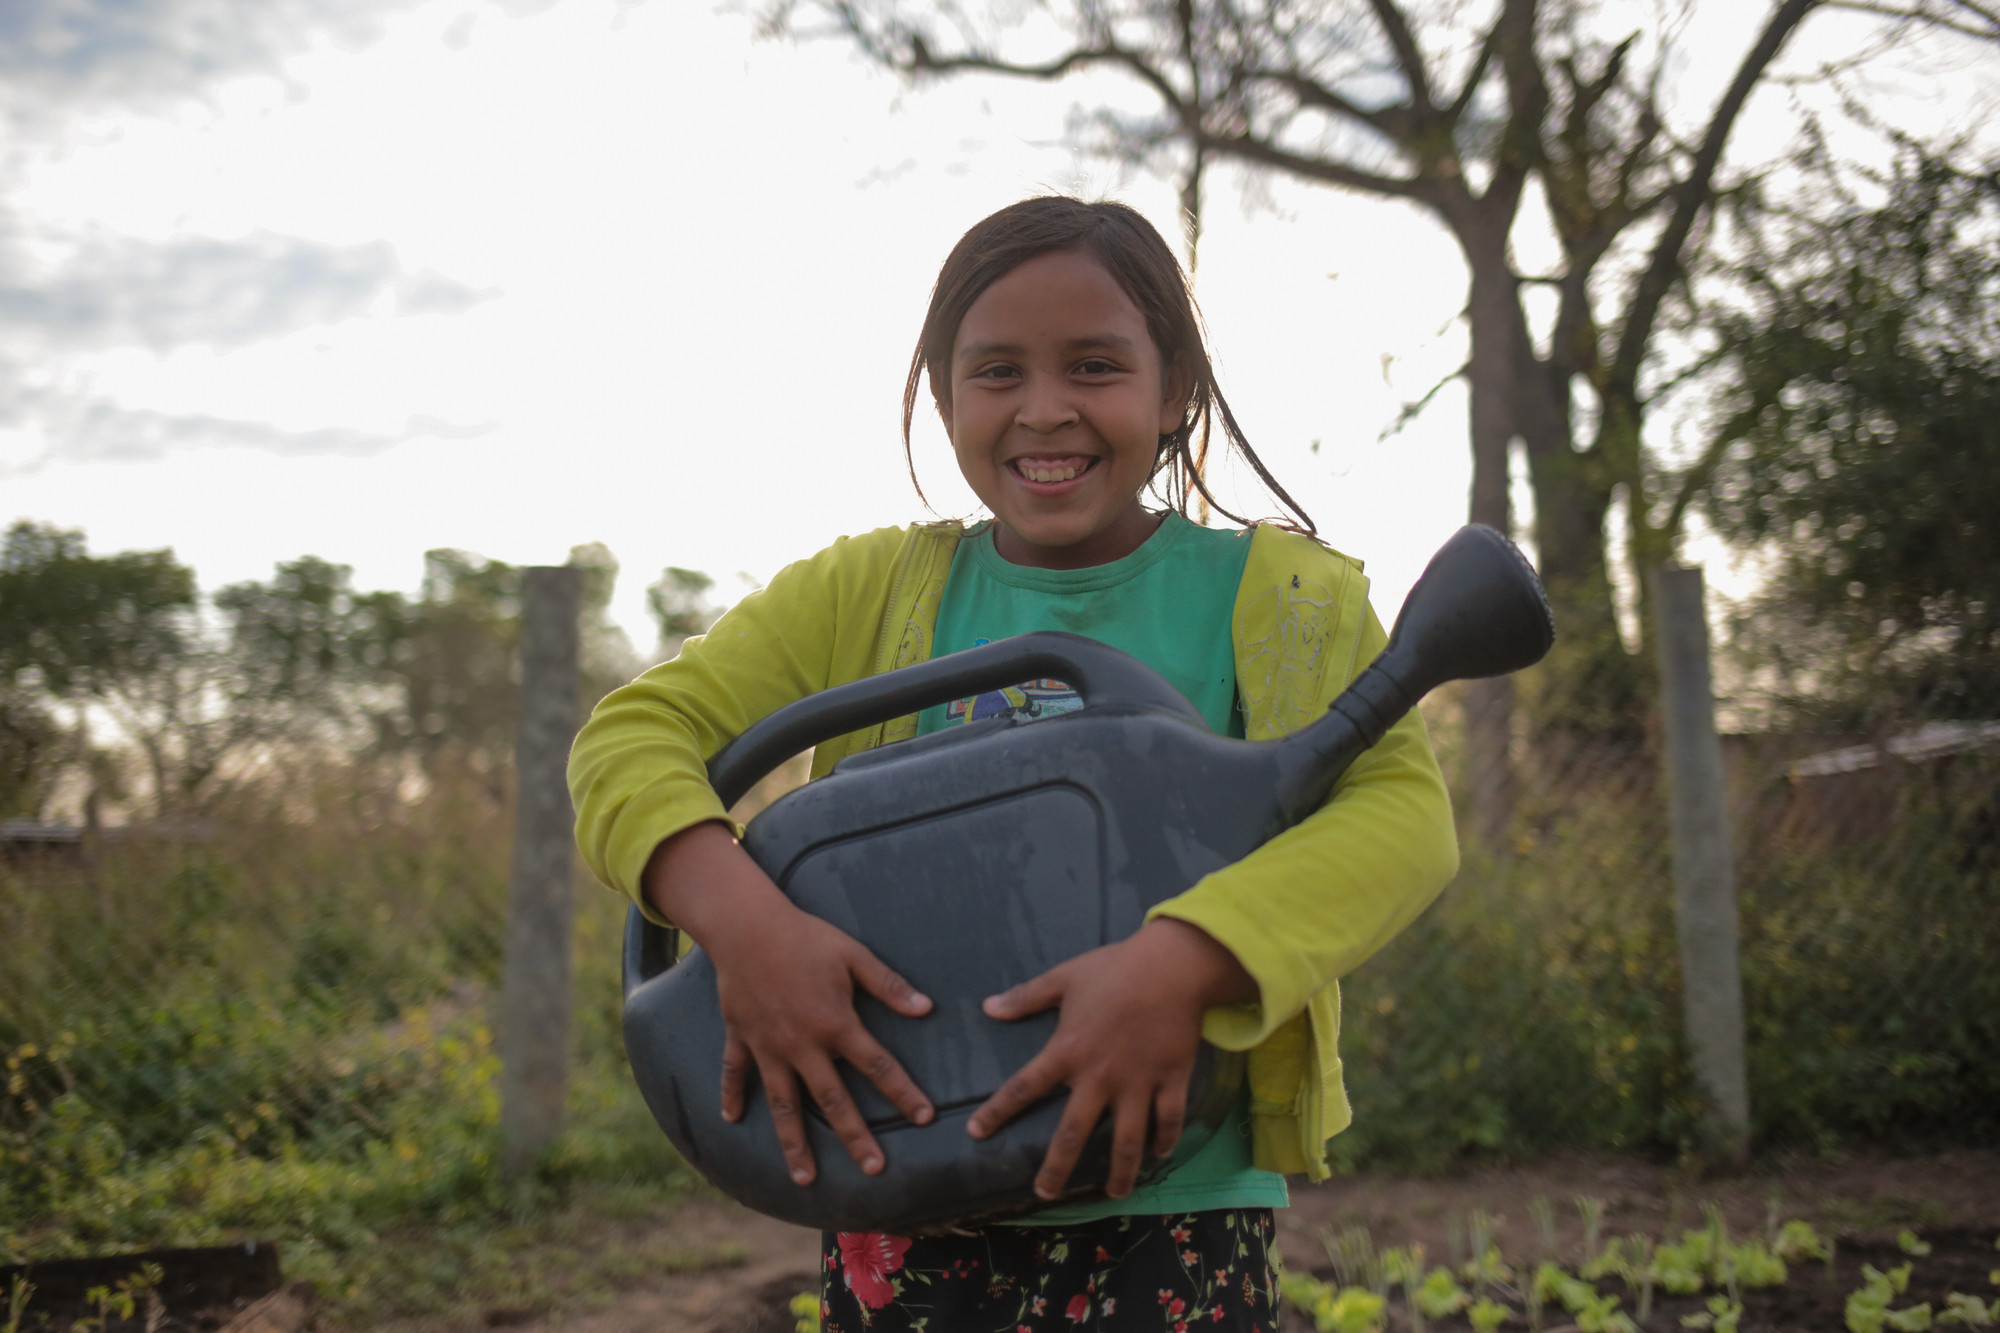 10-year-old Mercedes Benitez in her Community Garden